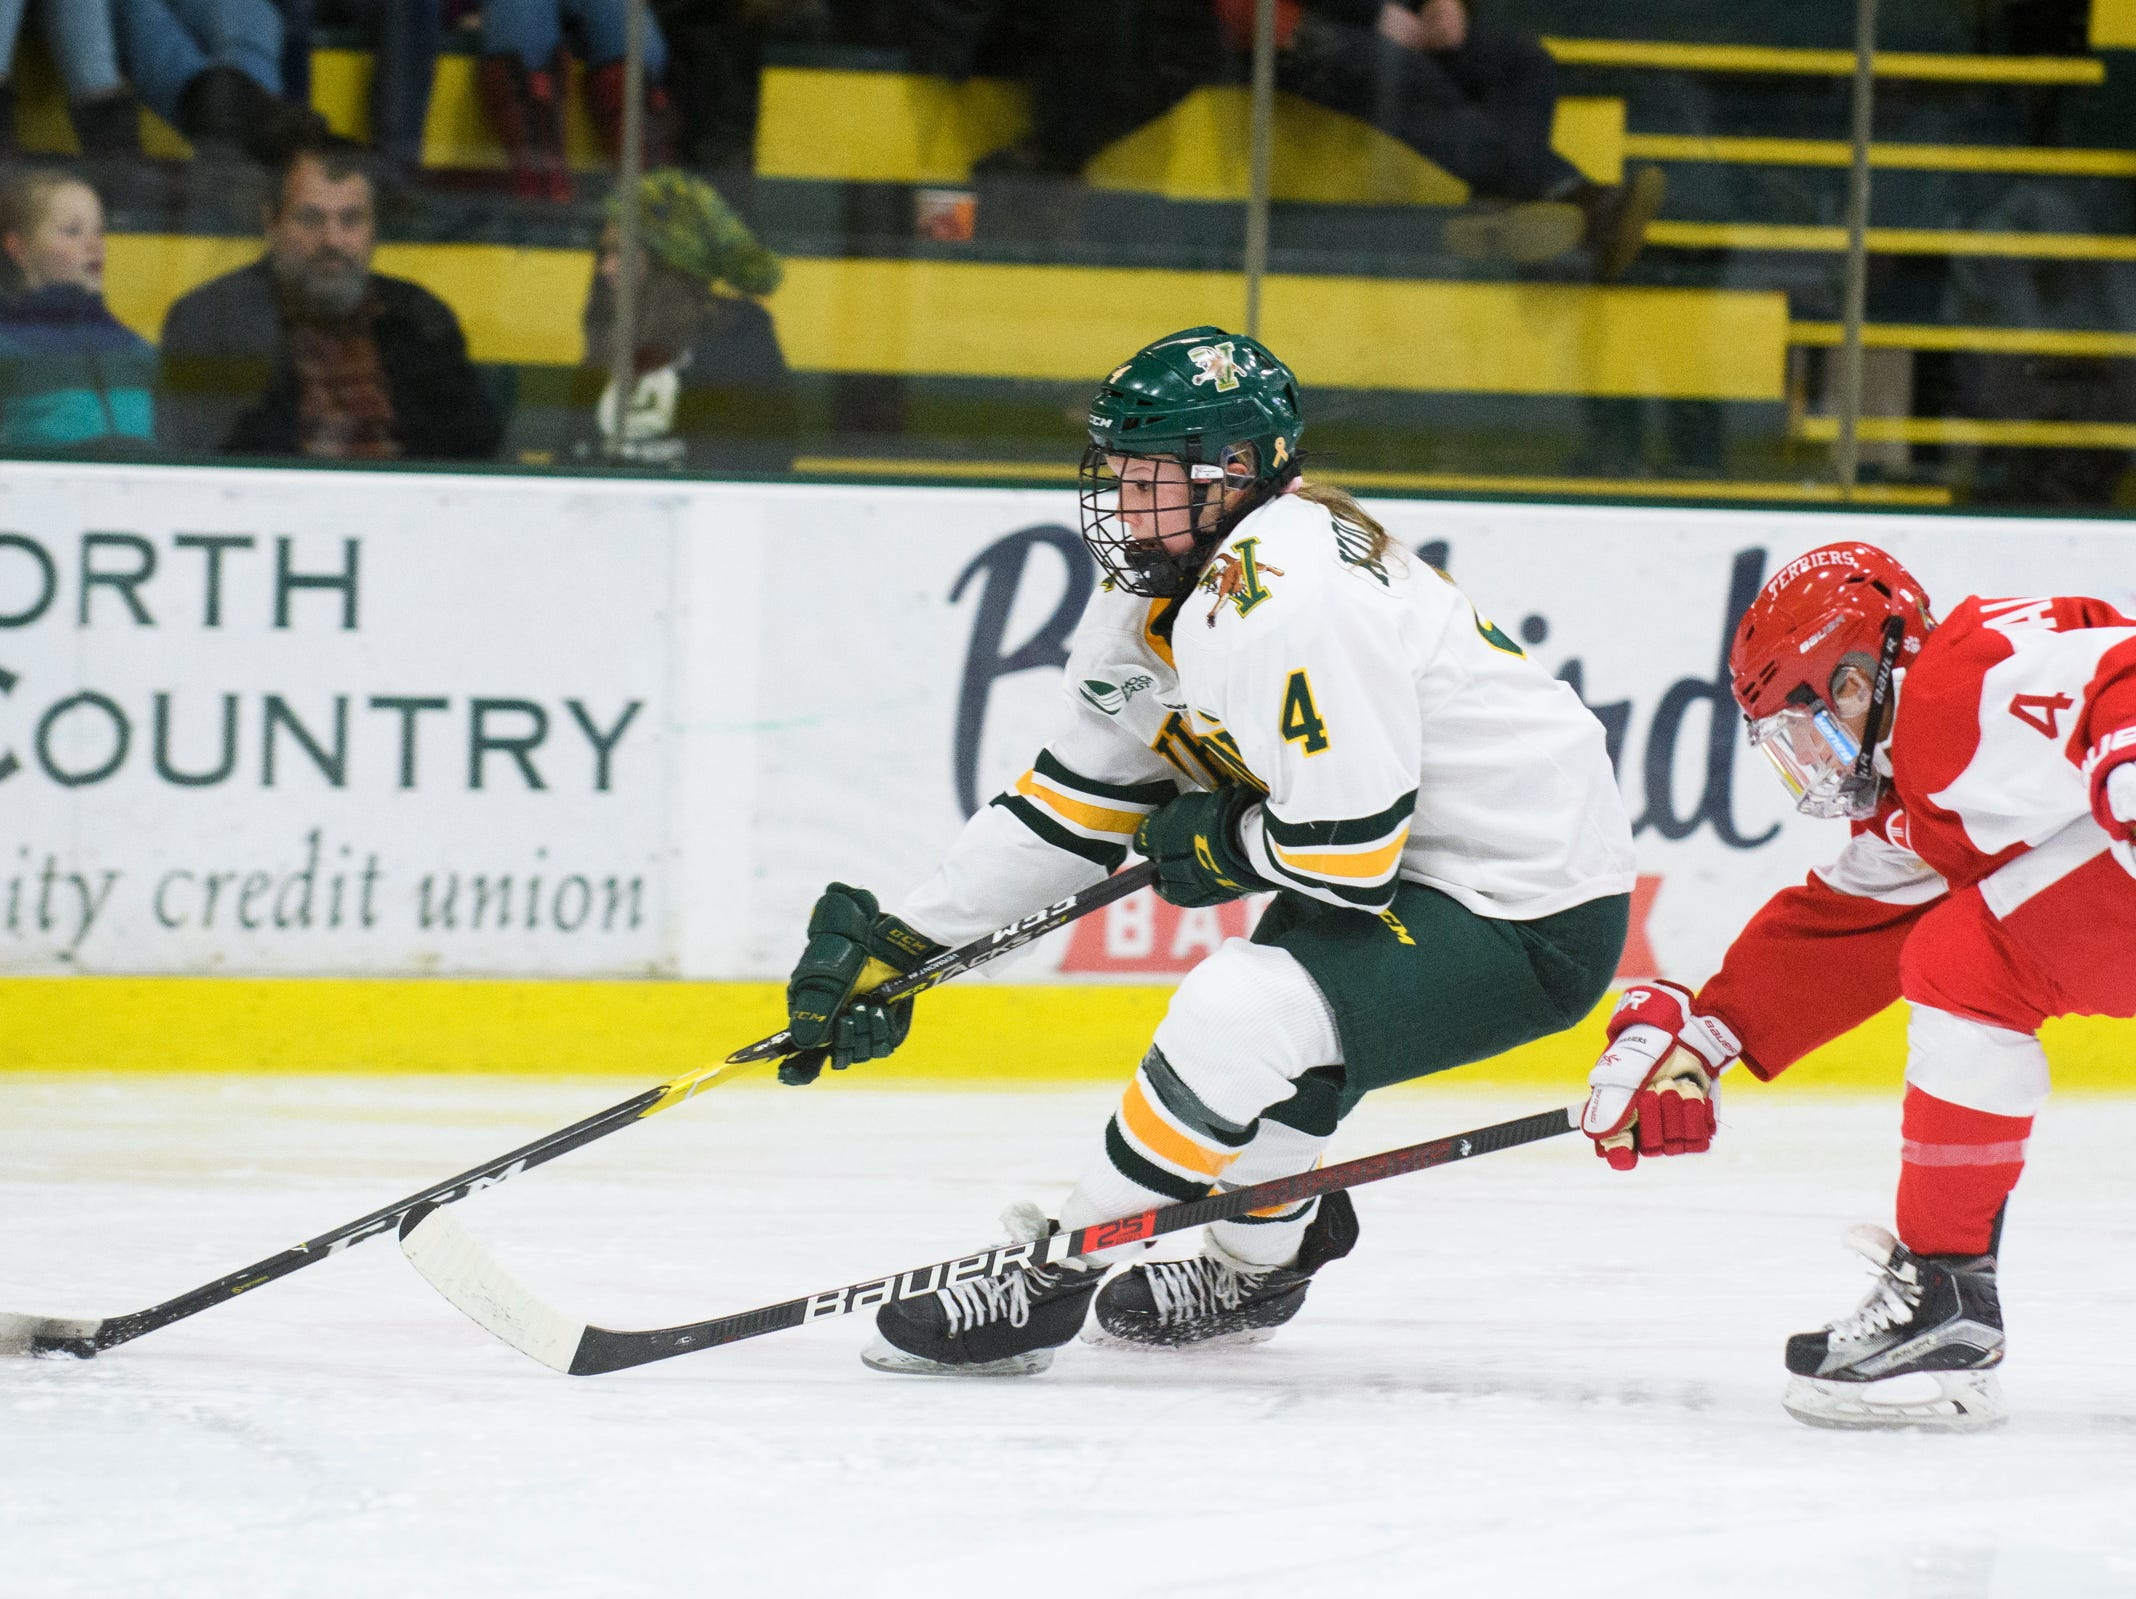 Vermont's Sammy Kolowrat (4) skates with the puck past Boston's Alexandra Calderone (4) during the women's hockey game between the Boston Terriers and the Vermont Catamounts at Gutterson Field House on Friday night February 1, 2019 in Burlington, Vermont.S)